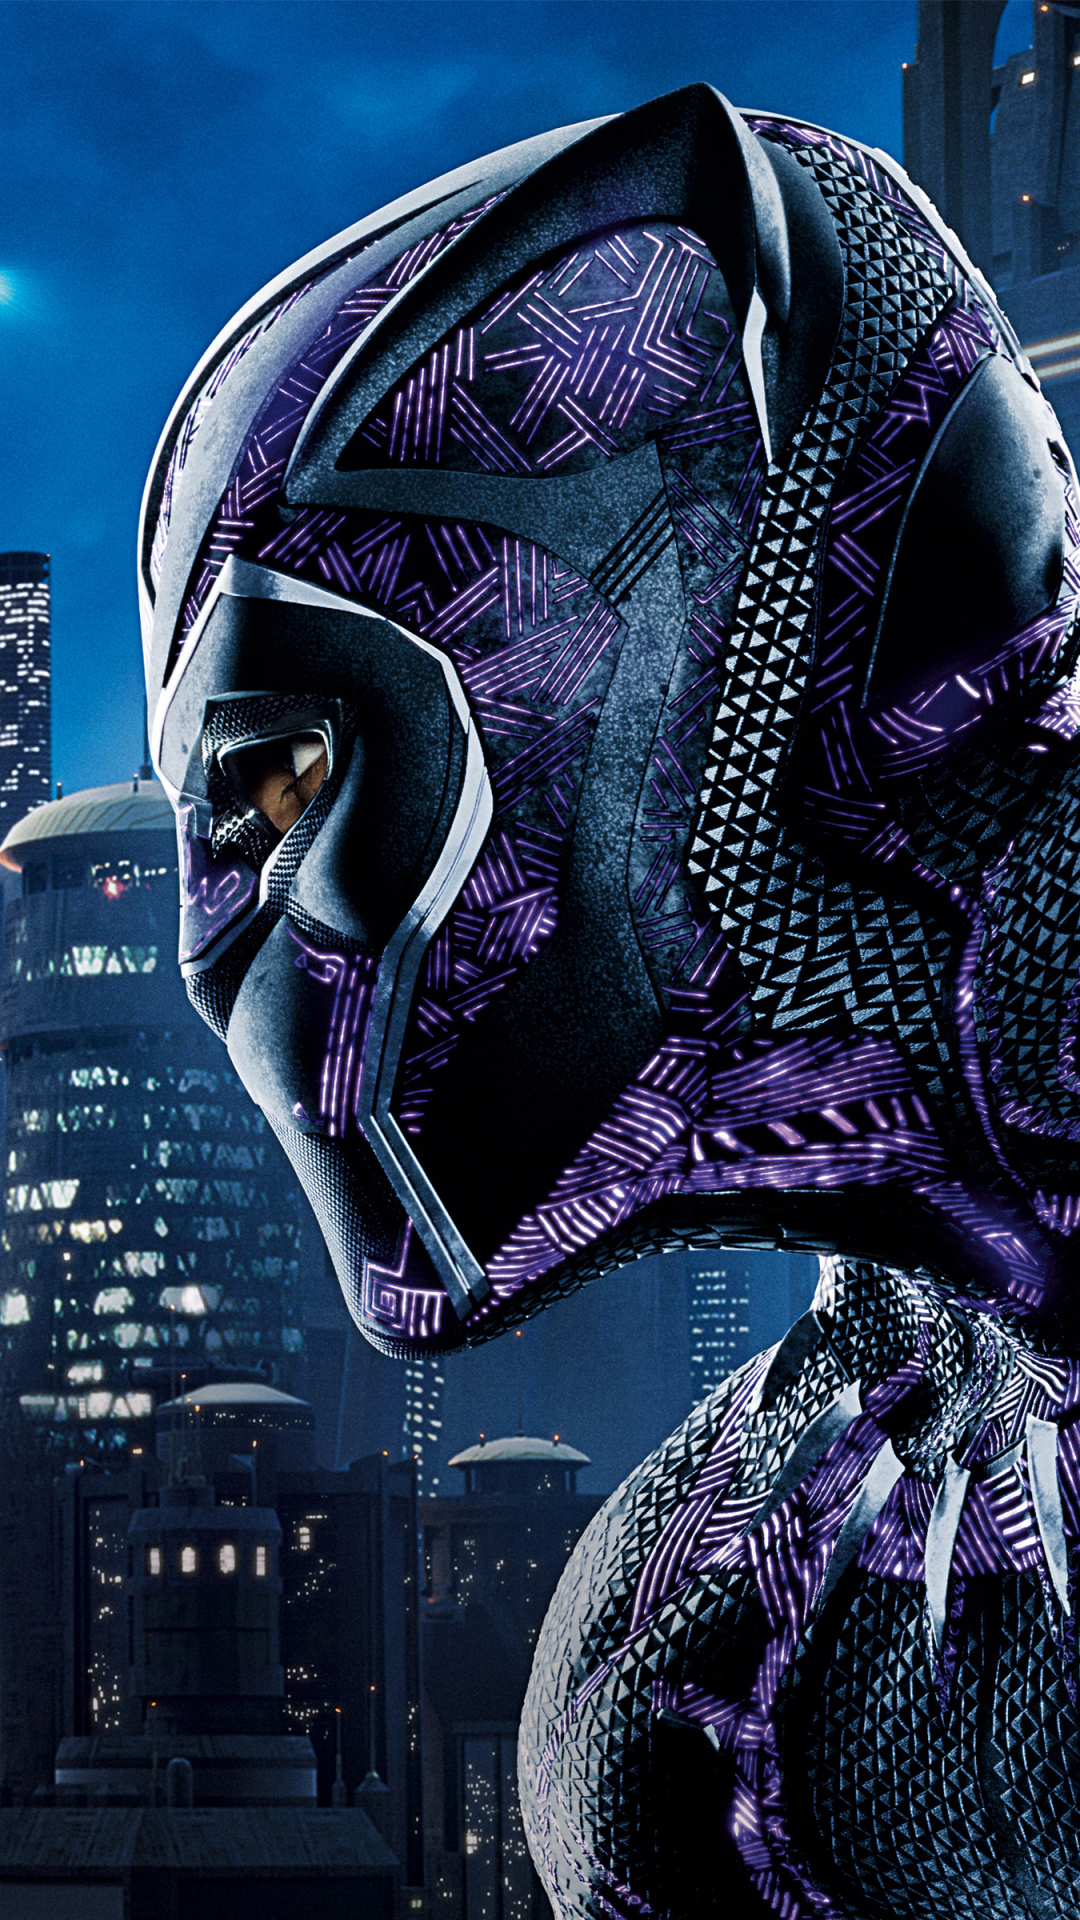 Movie Black Panther 1080x1920 Wallpaper Id 710106 Mobile Abyss